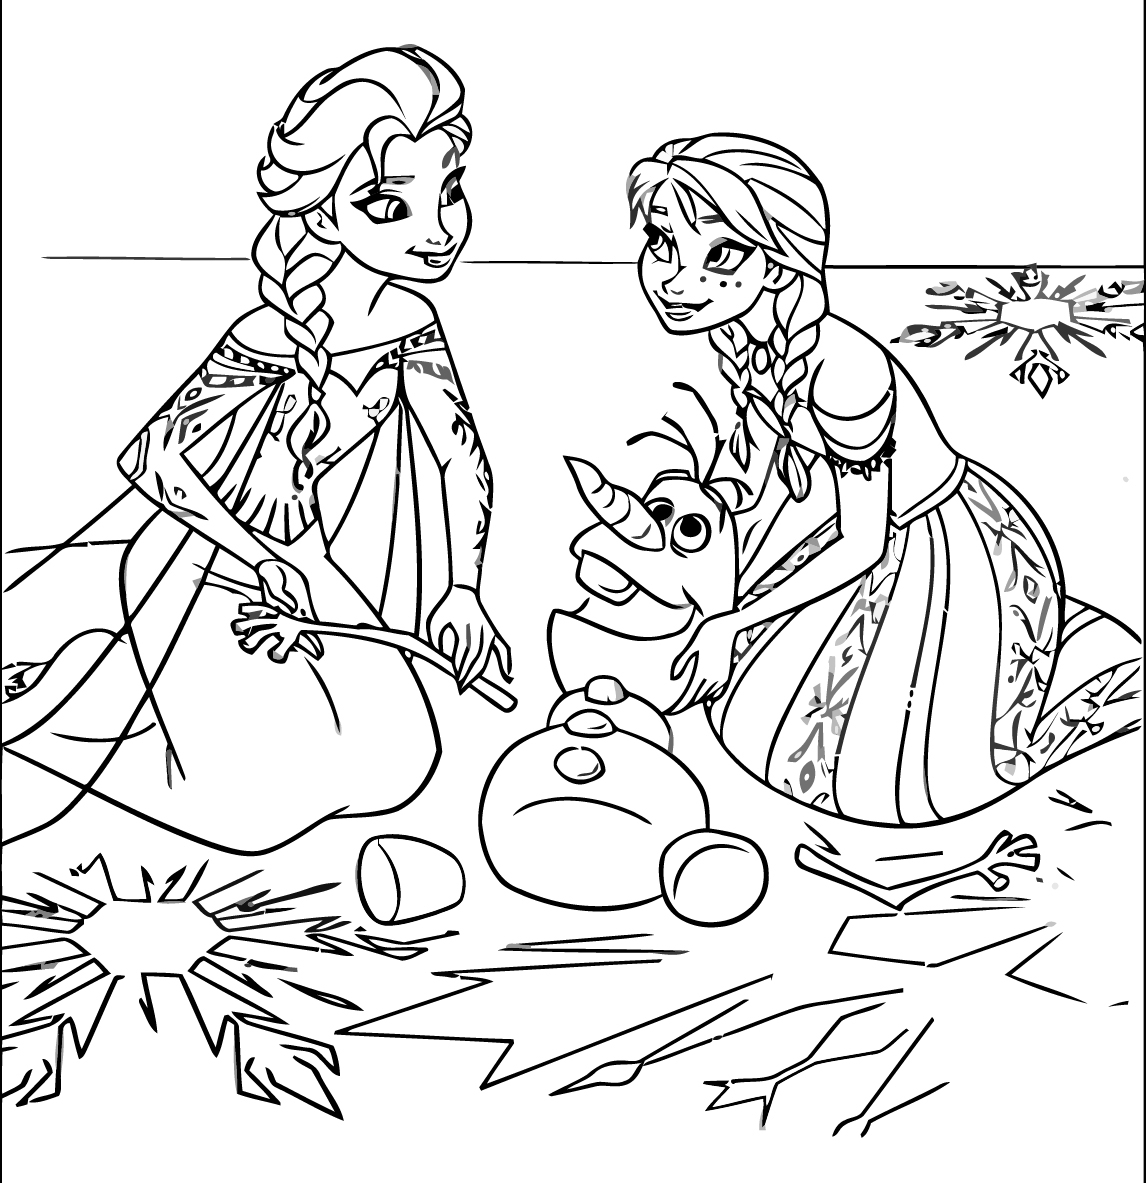 Printable Coloring Pages For Girls Complex Coloring Pages For Girls At Getdrawings Free For